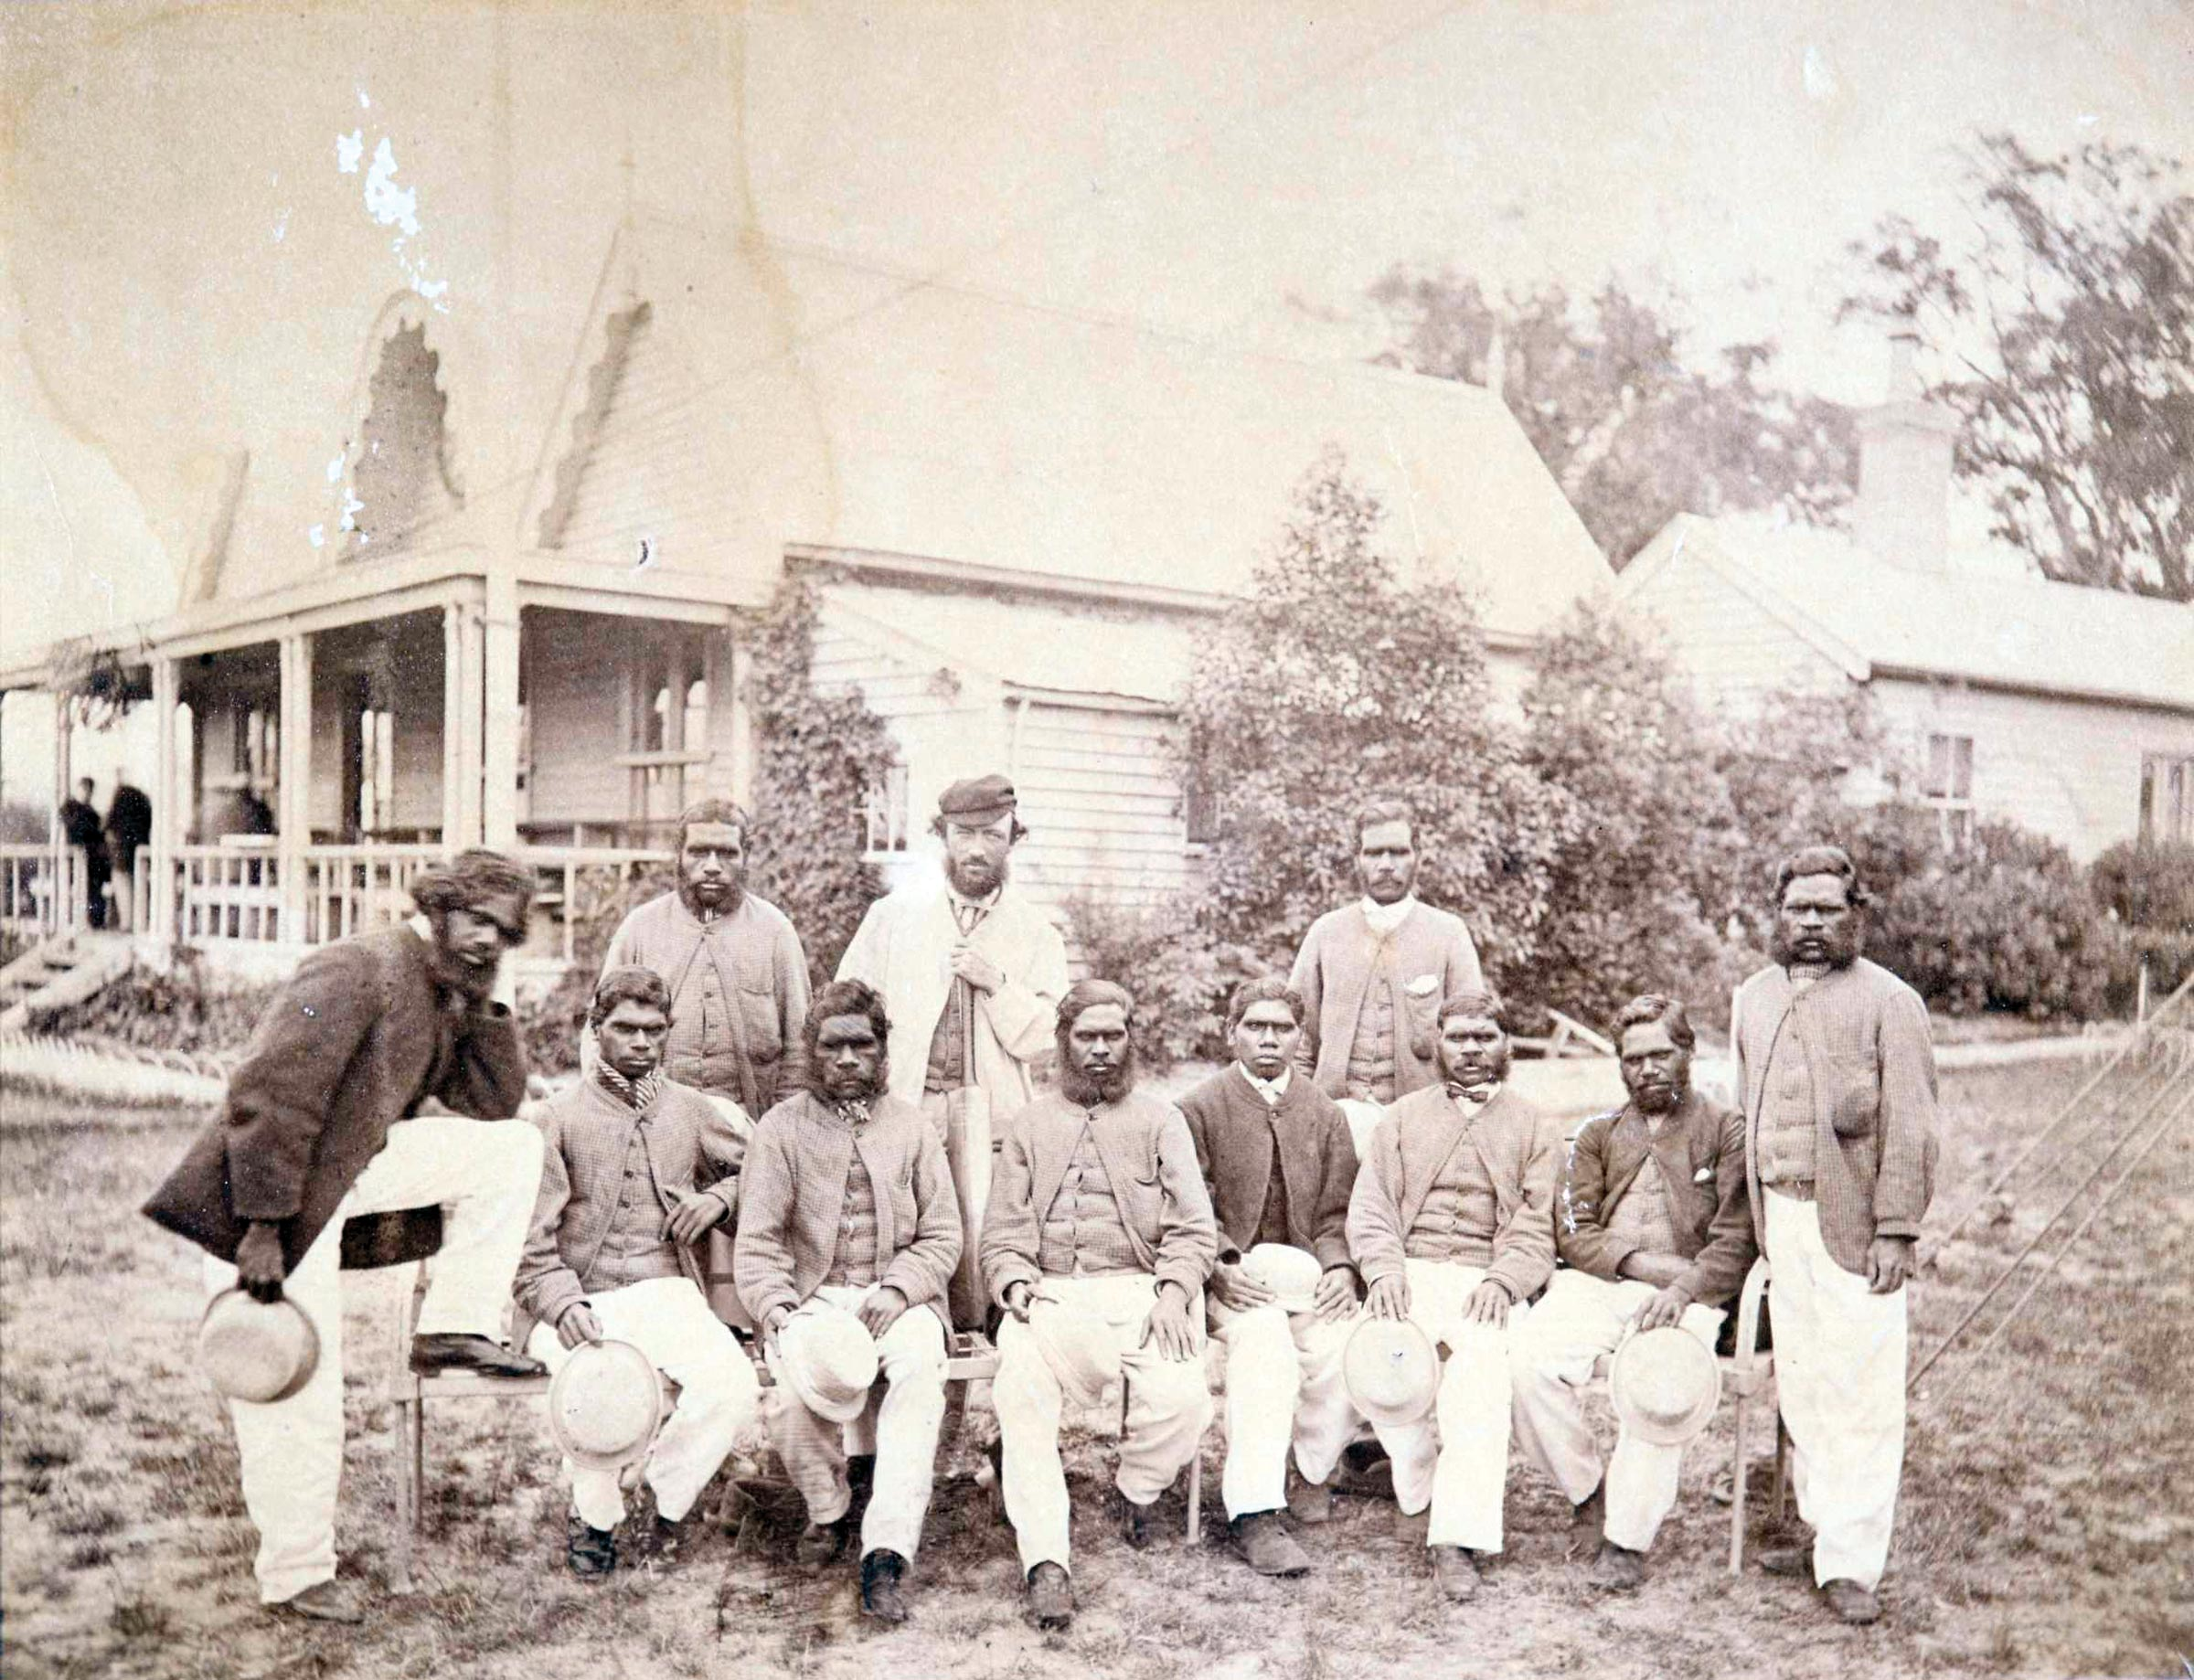 Tom Wills with his team in 1866